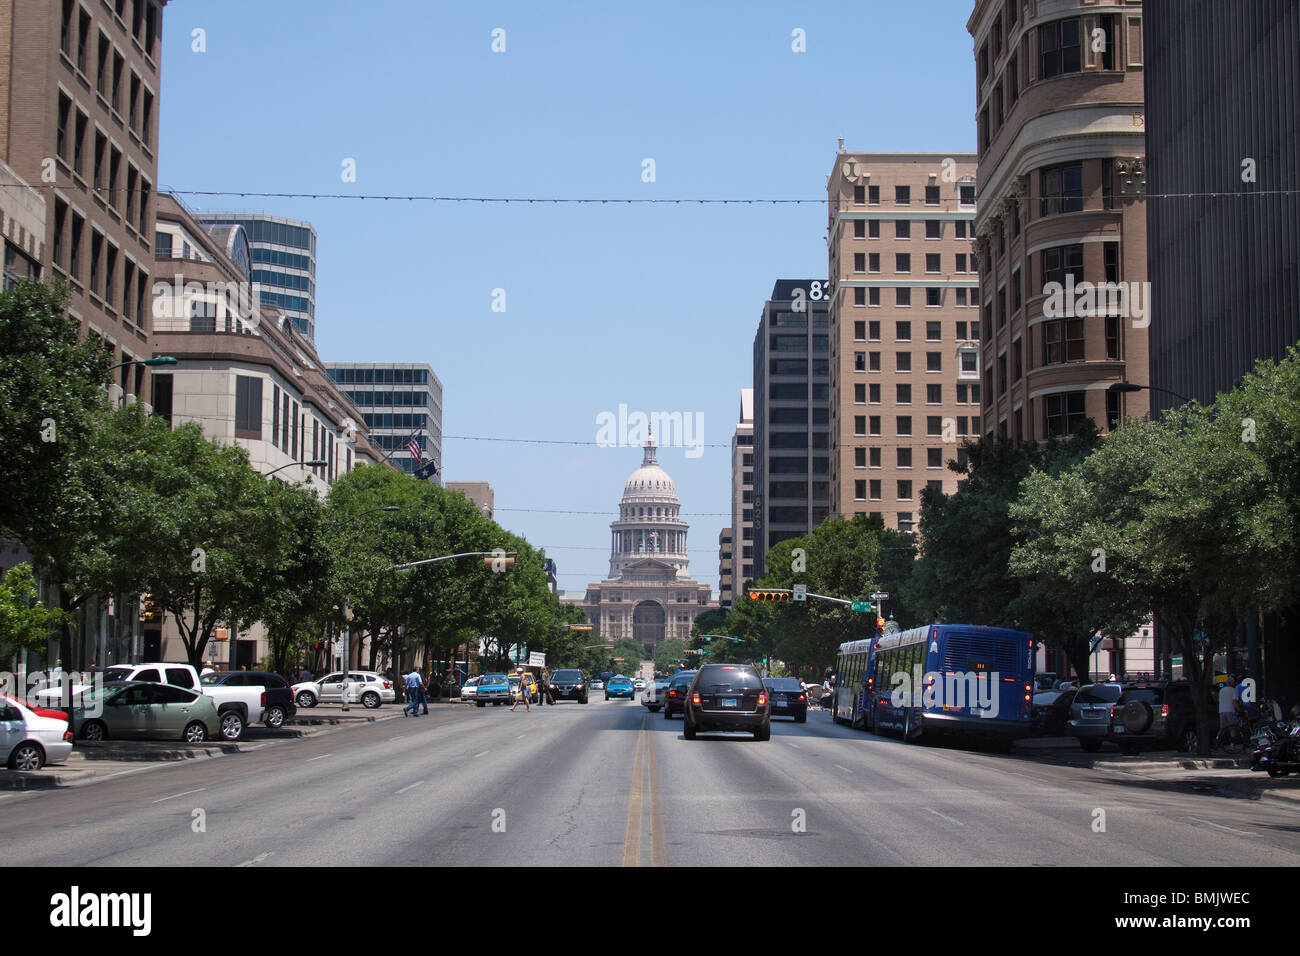 Congress Avenue in downtown Austin leading to Texas state capitol building or statehouse - Stock Image